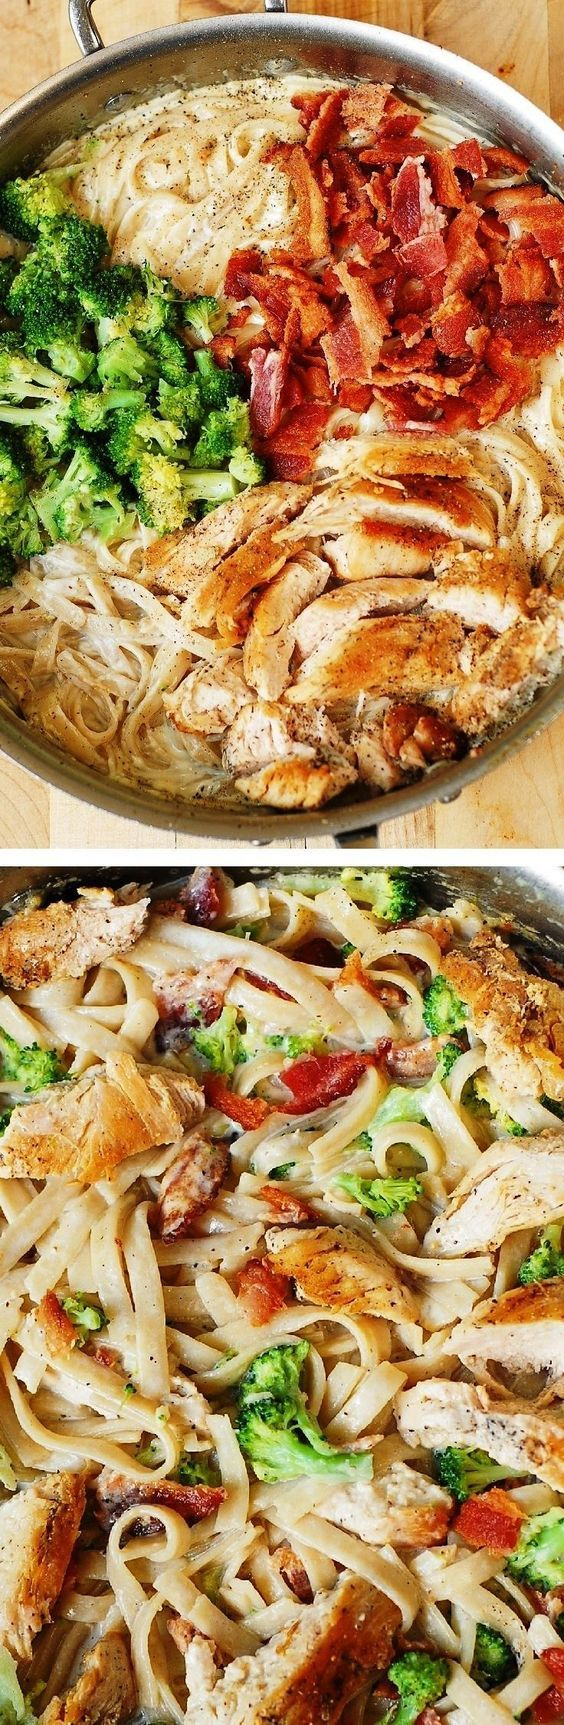 Creamy Broccoli Chicken Breast and Bacon Fettuccine Pasta in homemade Alfredo…